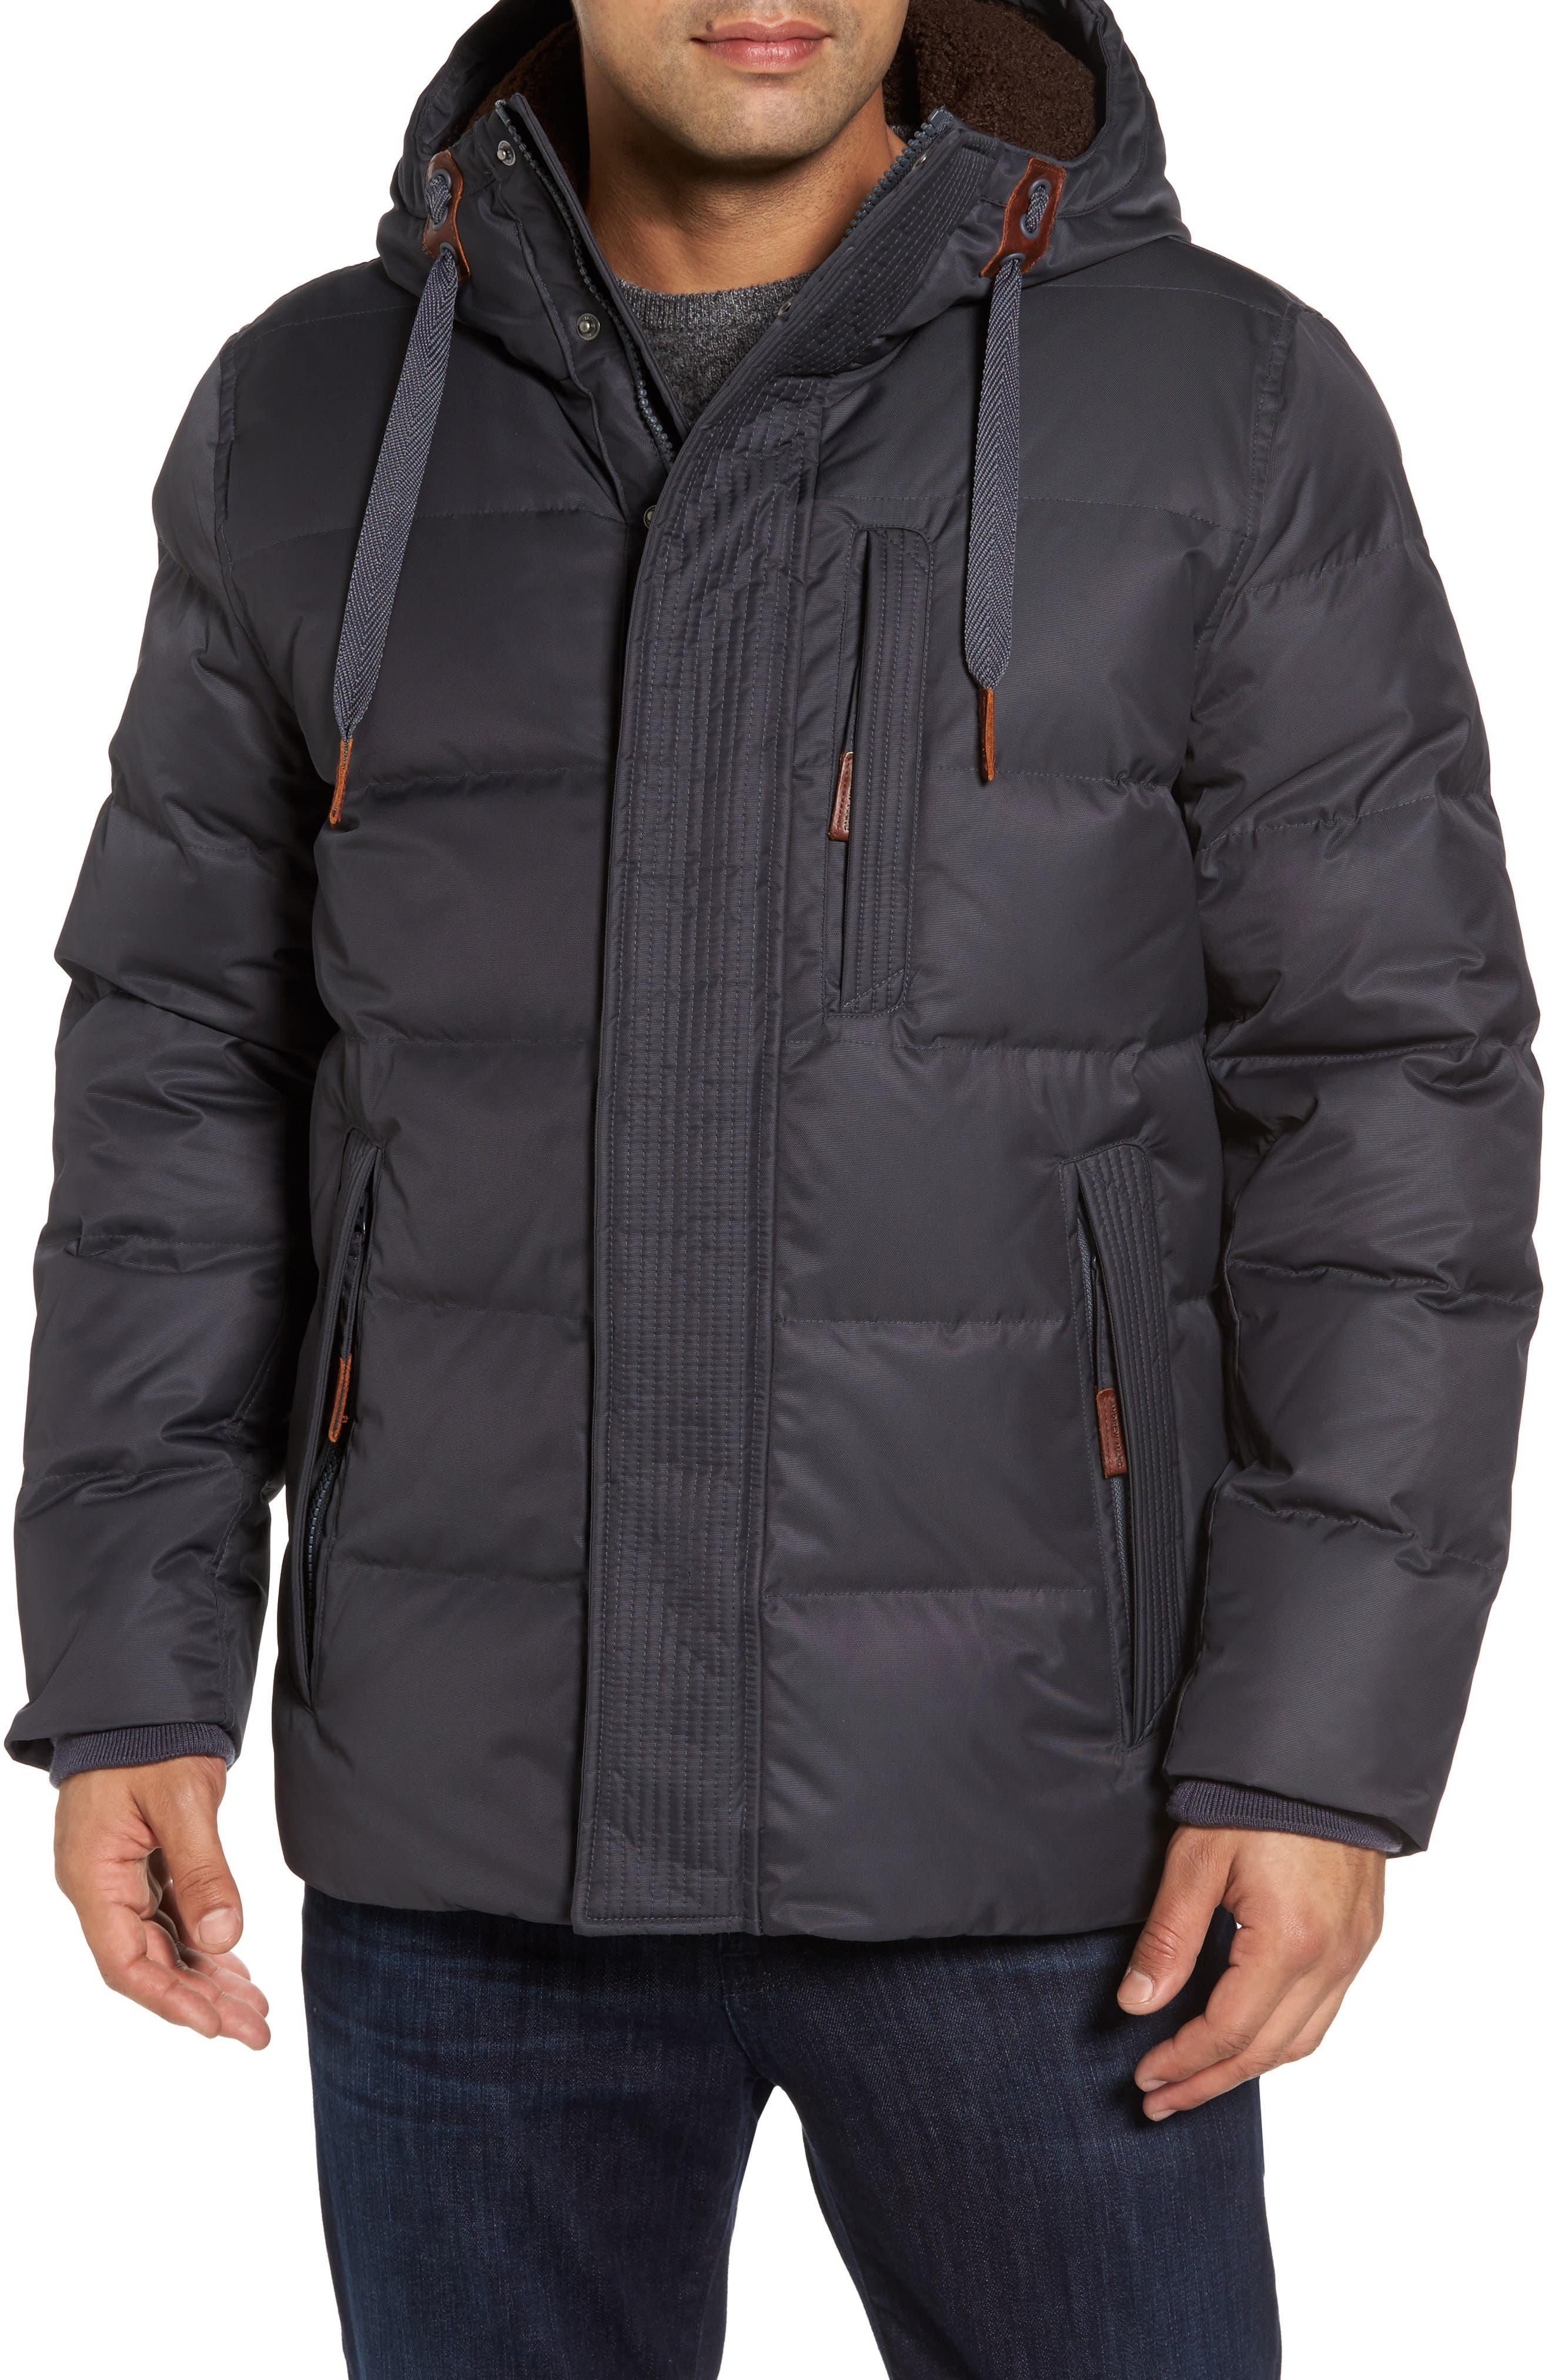 Alternate Image 1 Selected - Andrew Marc Groton Slim Down Jacket with Faux Shearling Lining